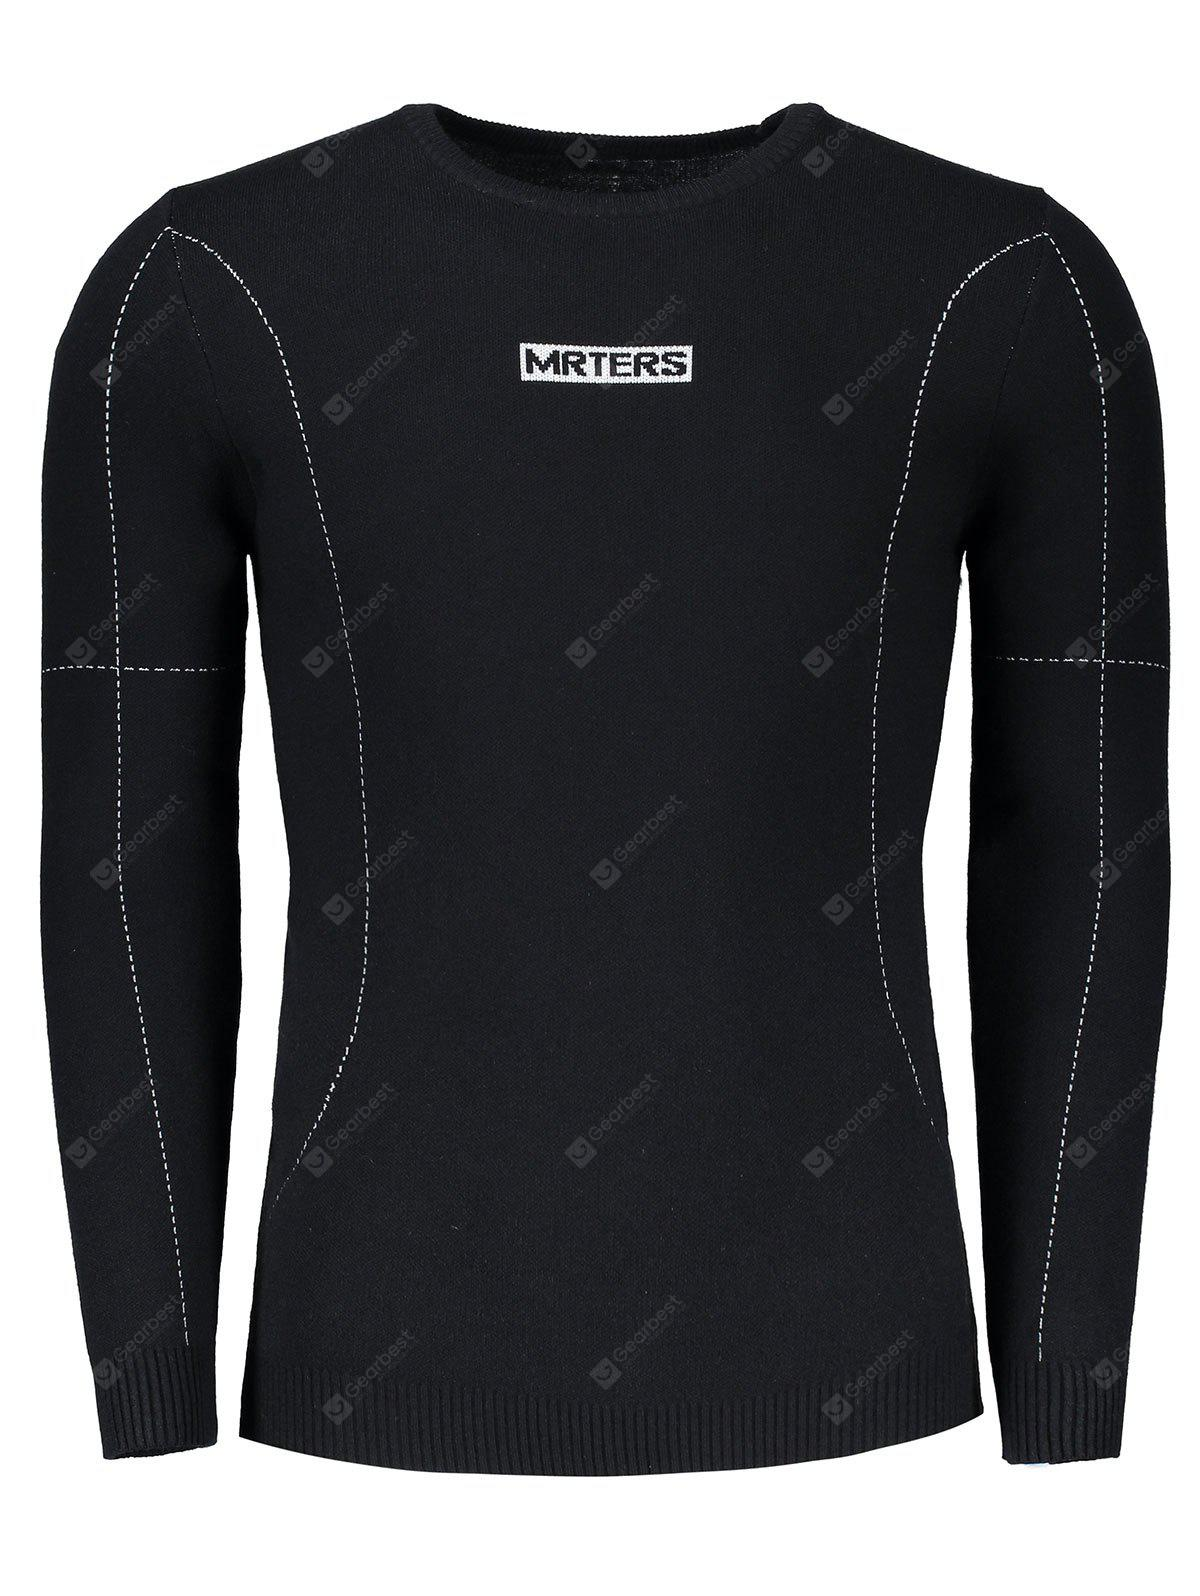 Mrters Graphic Mens Sweater